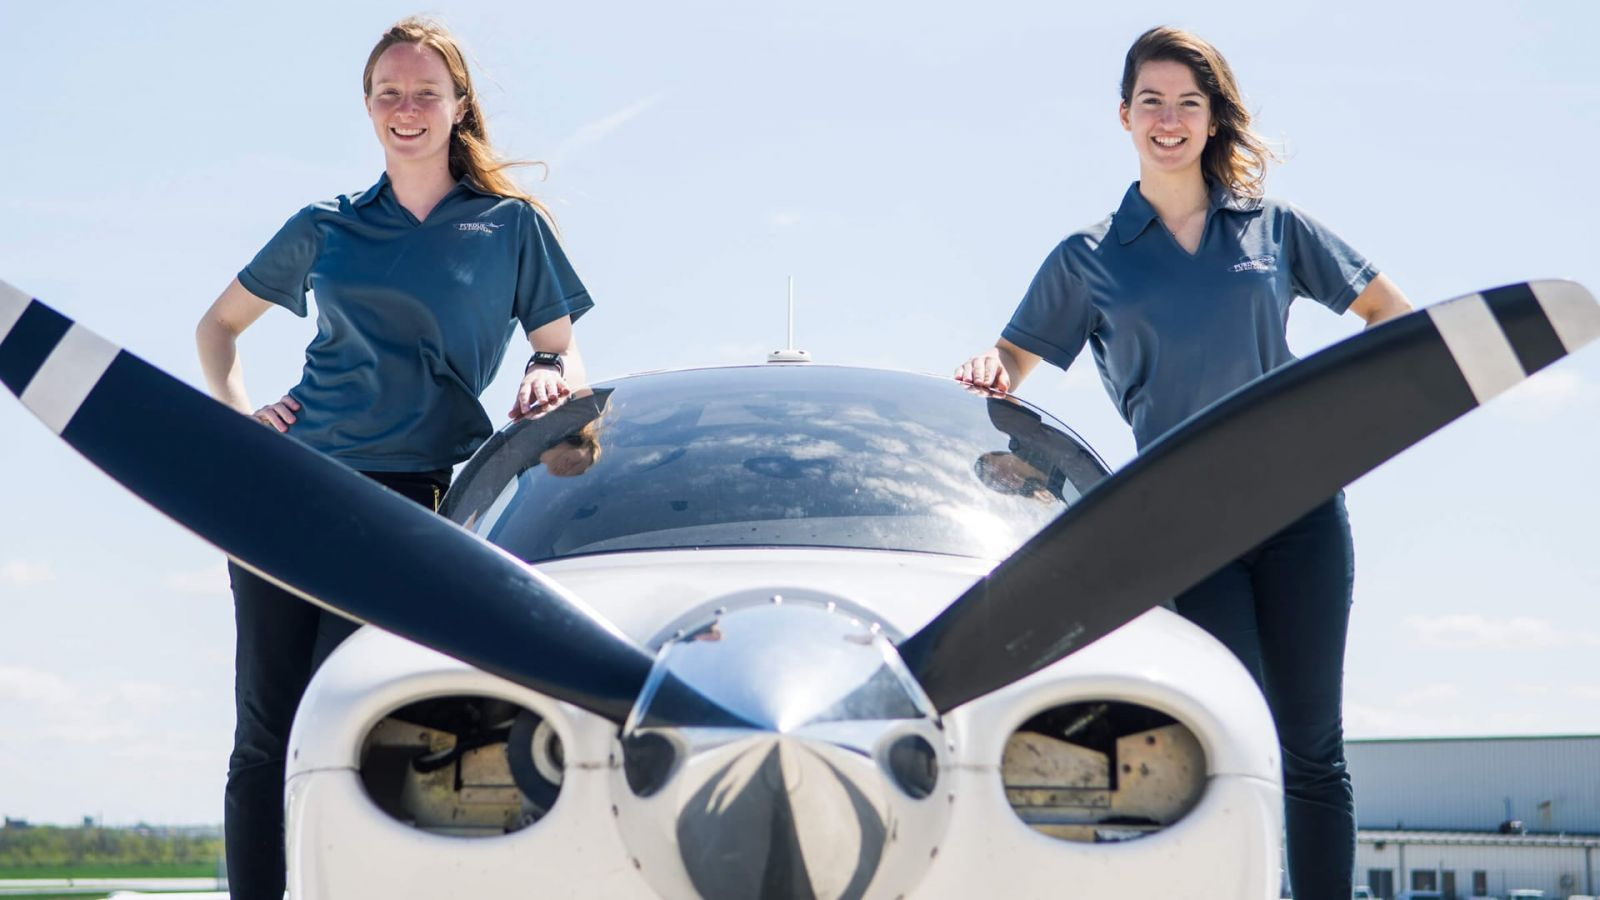 Pilot Tiffany Imhoff and co-pilot Nina Bouthier, both Professional Flight program majors at Purdue, will be representing the university among the field of teams in this year's Air Race Classic. (Purdue University photo/ Christopher Konecnik)